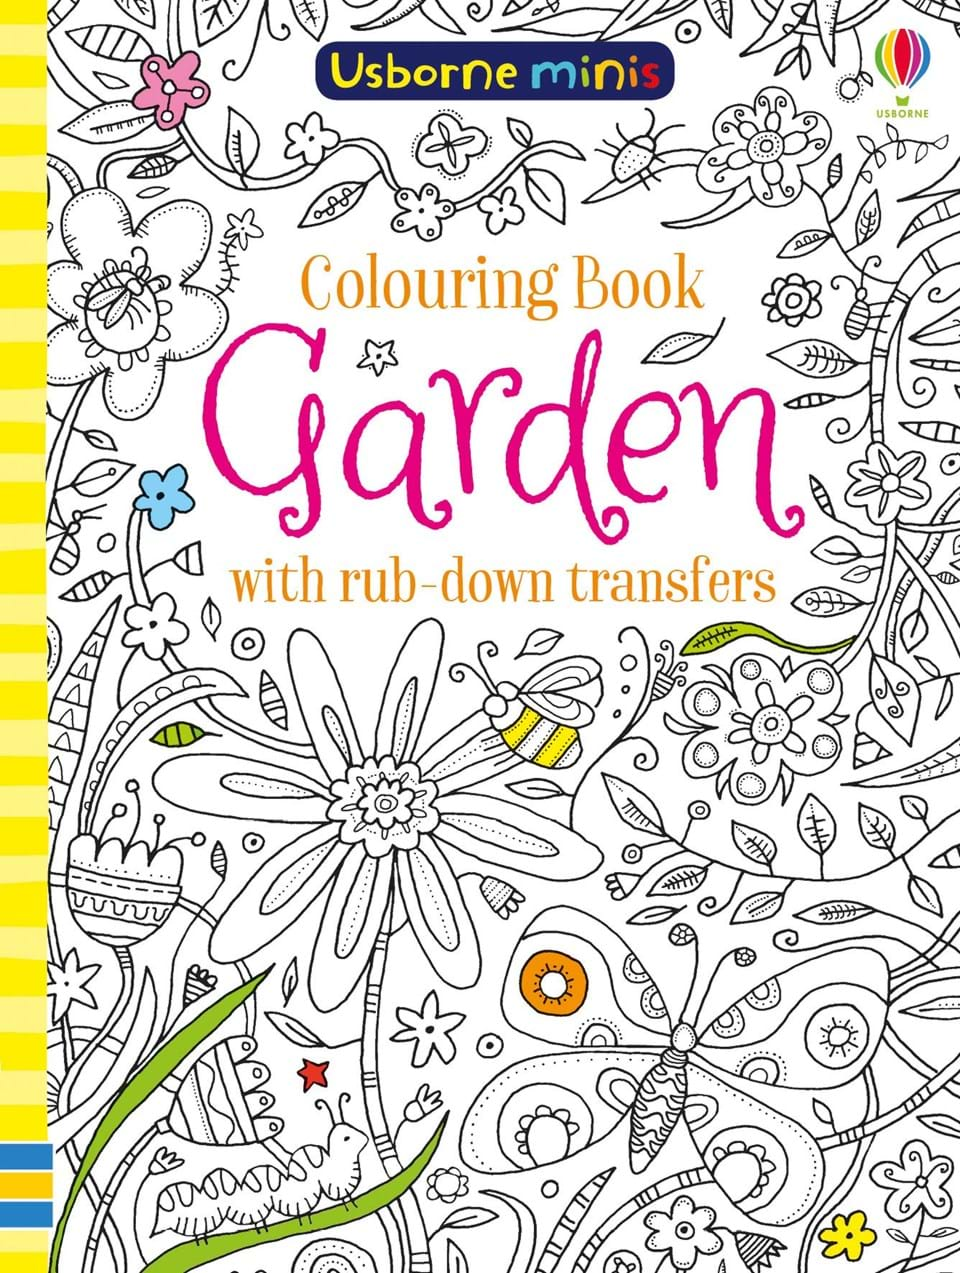 Colouring book garden with rub-down transfers the usborne terrific colouring and sticker book